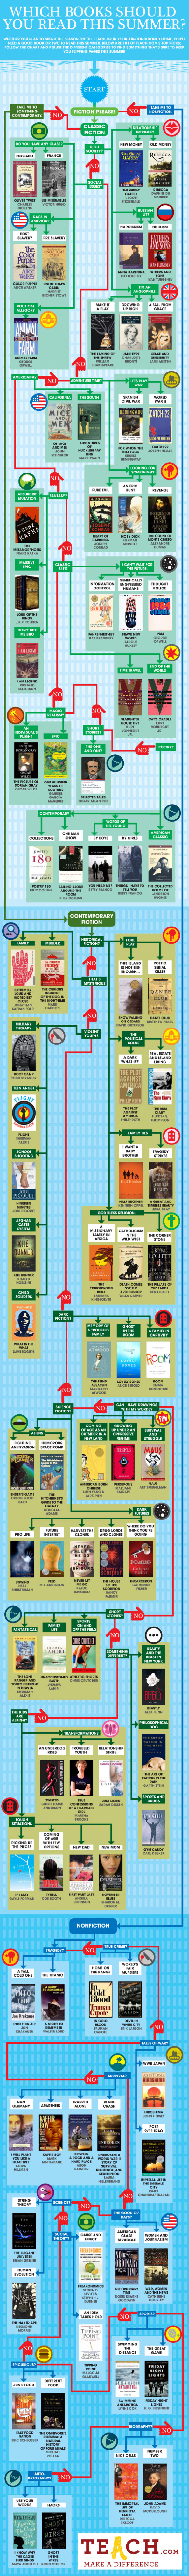 Summer Reading Flowchart: What Should You Read On Your Break? Infographic